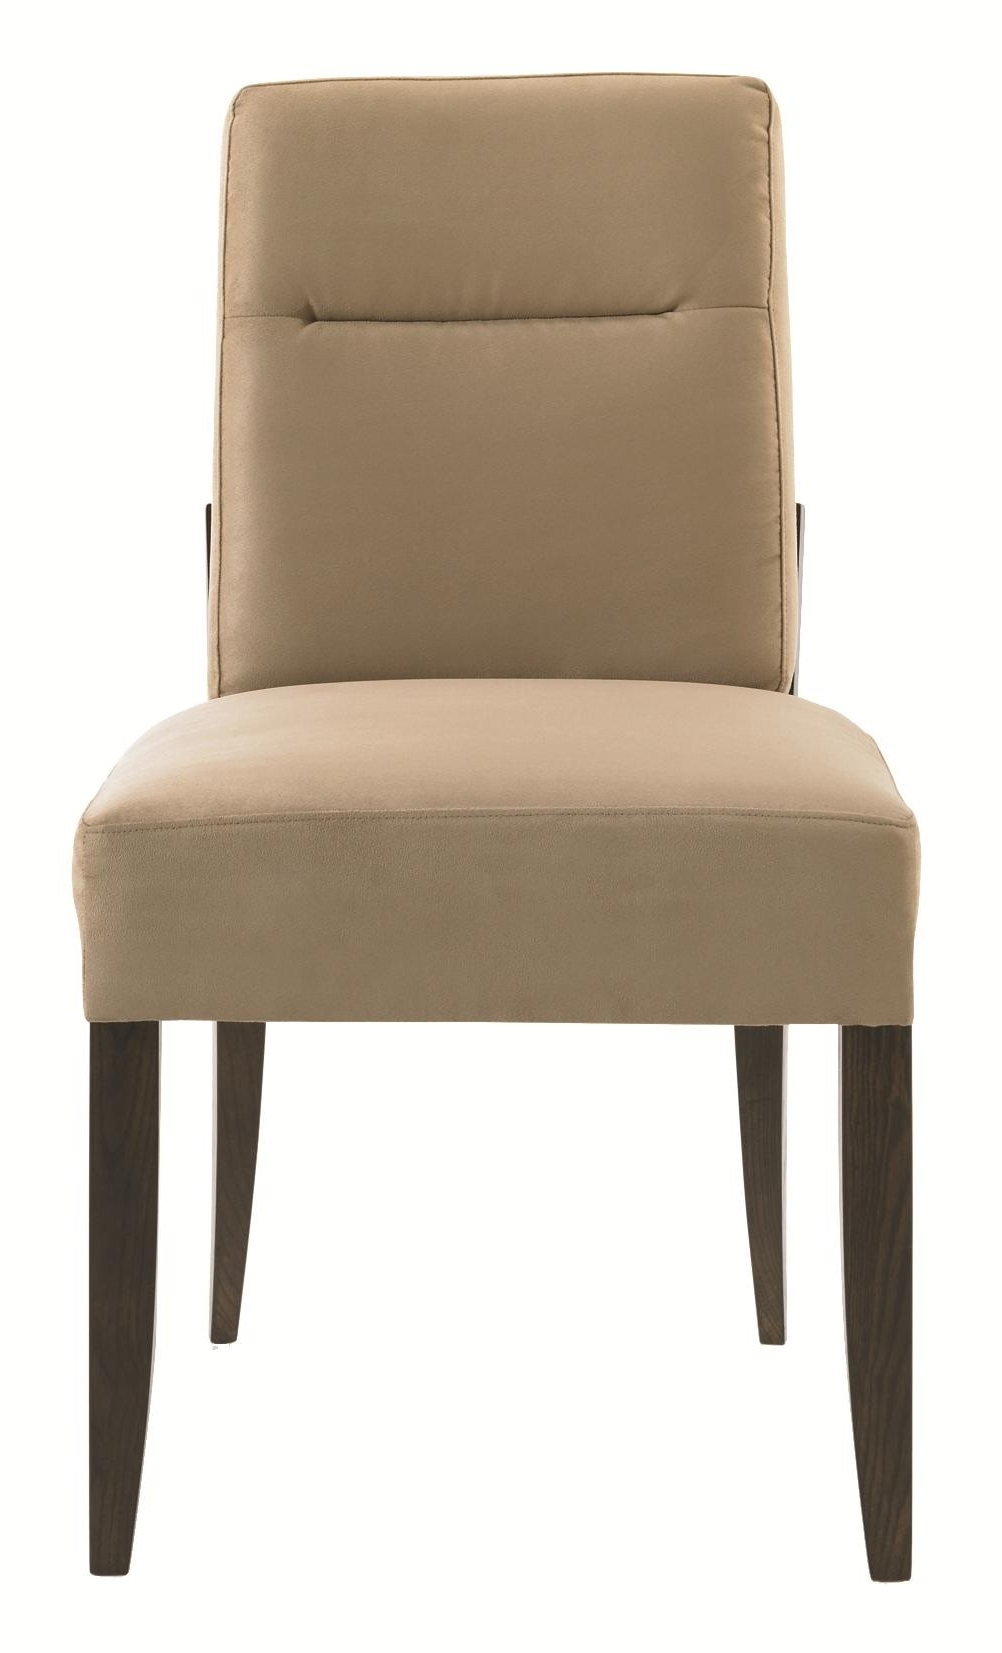 Popular Schnadig Modern Artisan Craftsmen Side Chair With Upholstered Seat Intended For Craftsman Upholstered Side Chairs (View 6 of 20)